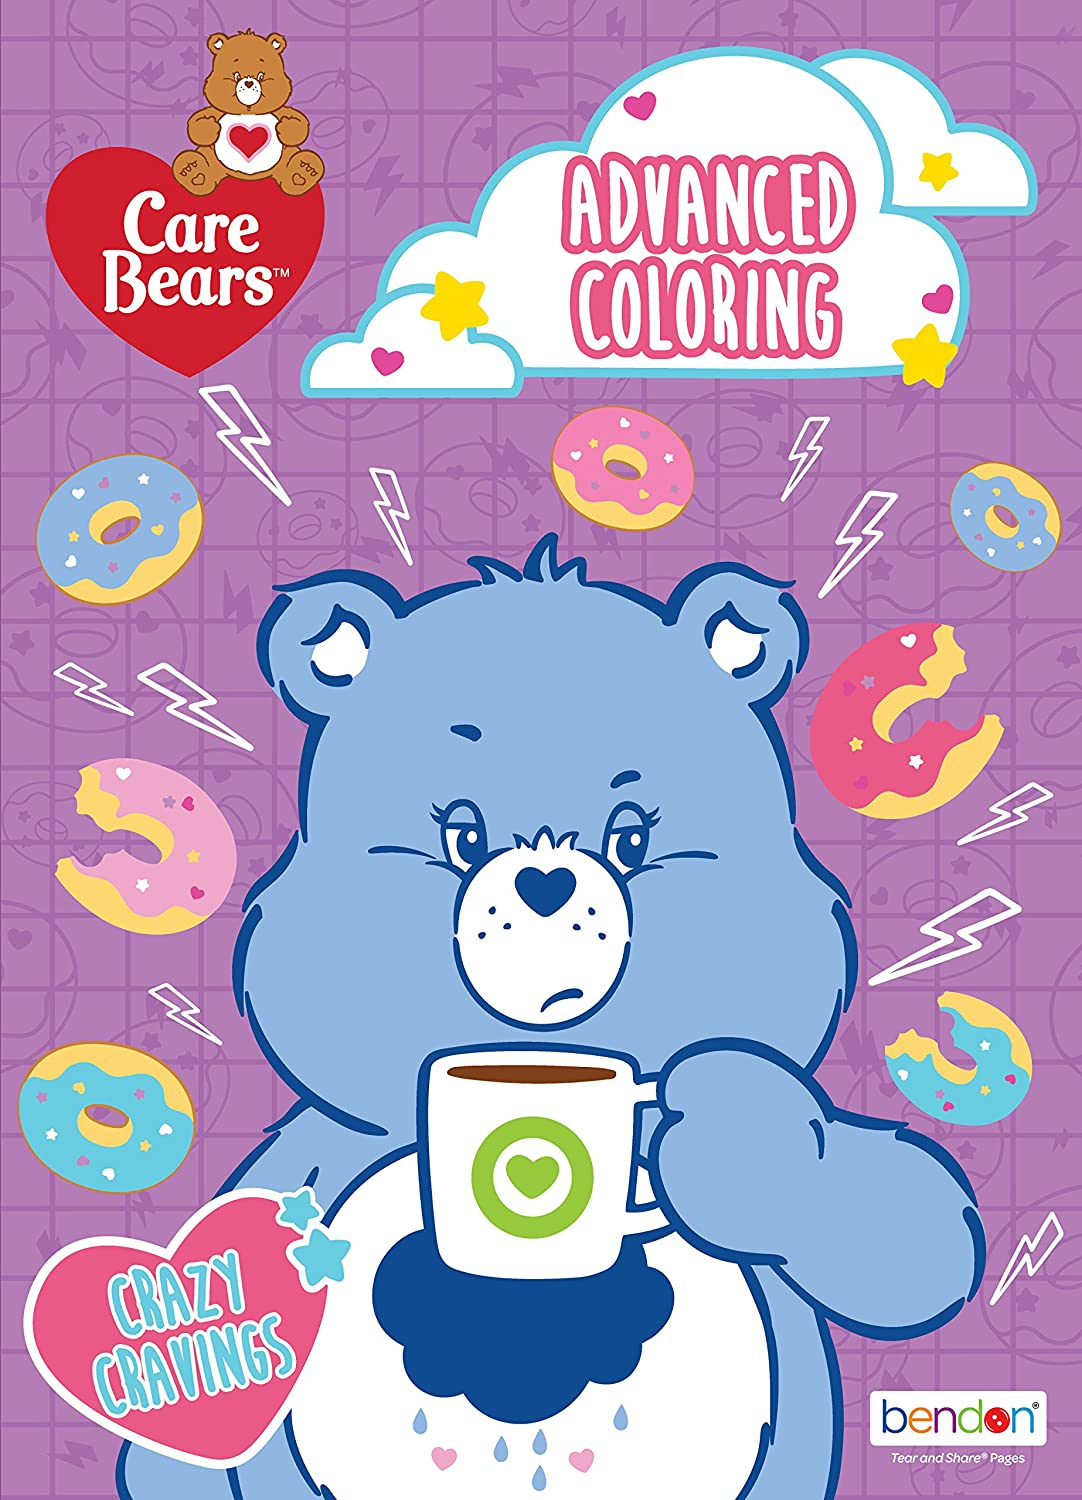 Care Bears Retro Advanced Coloring Book